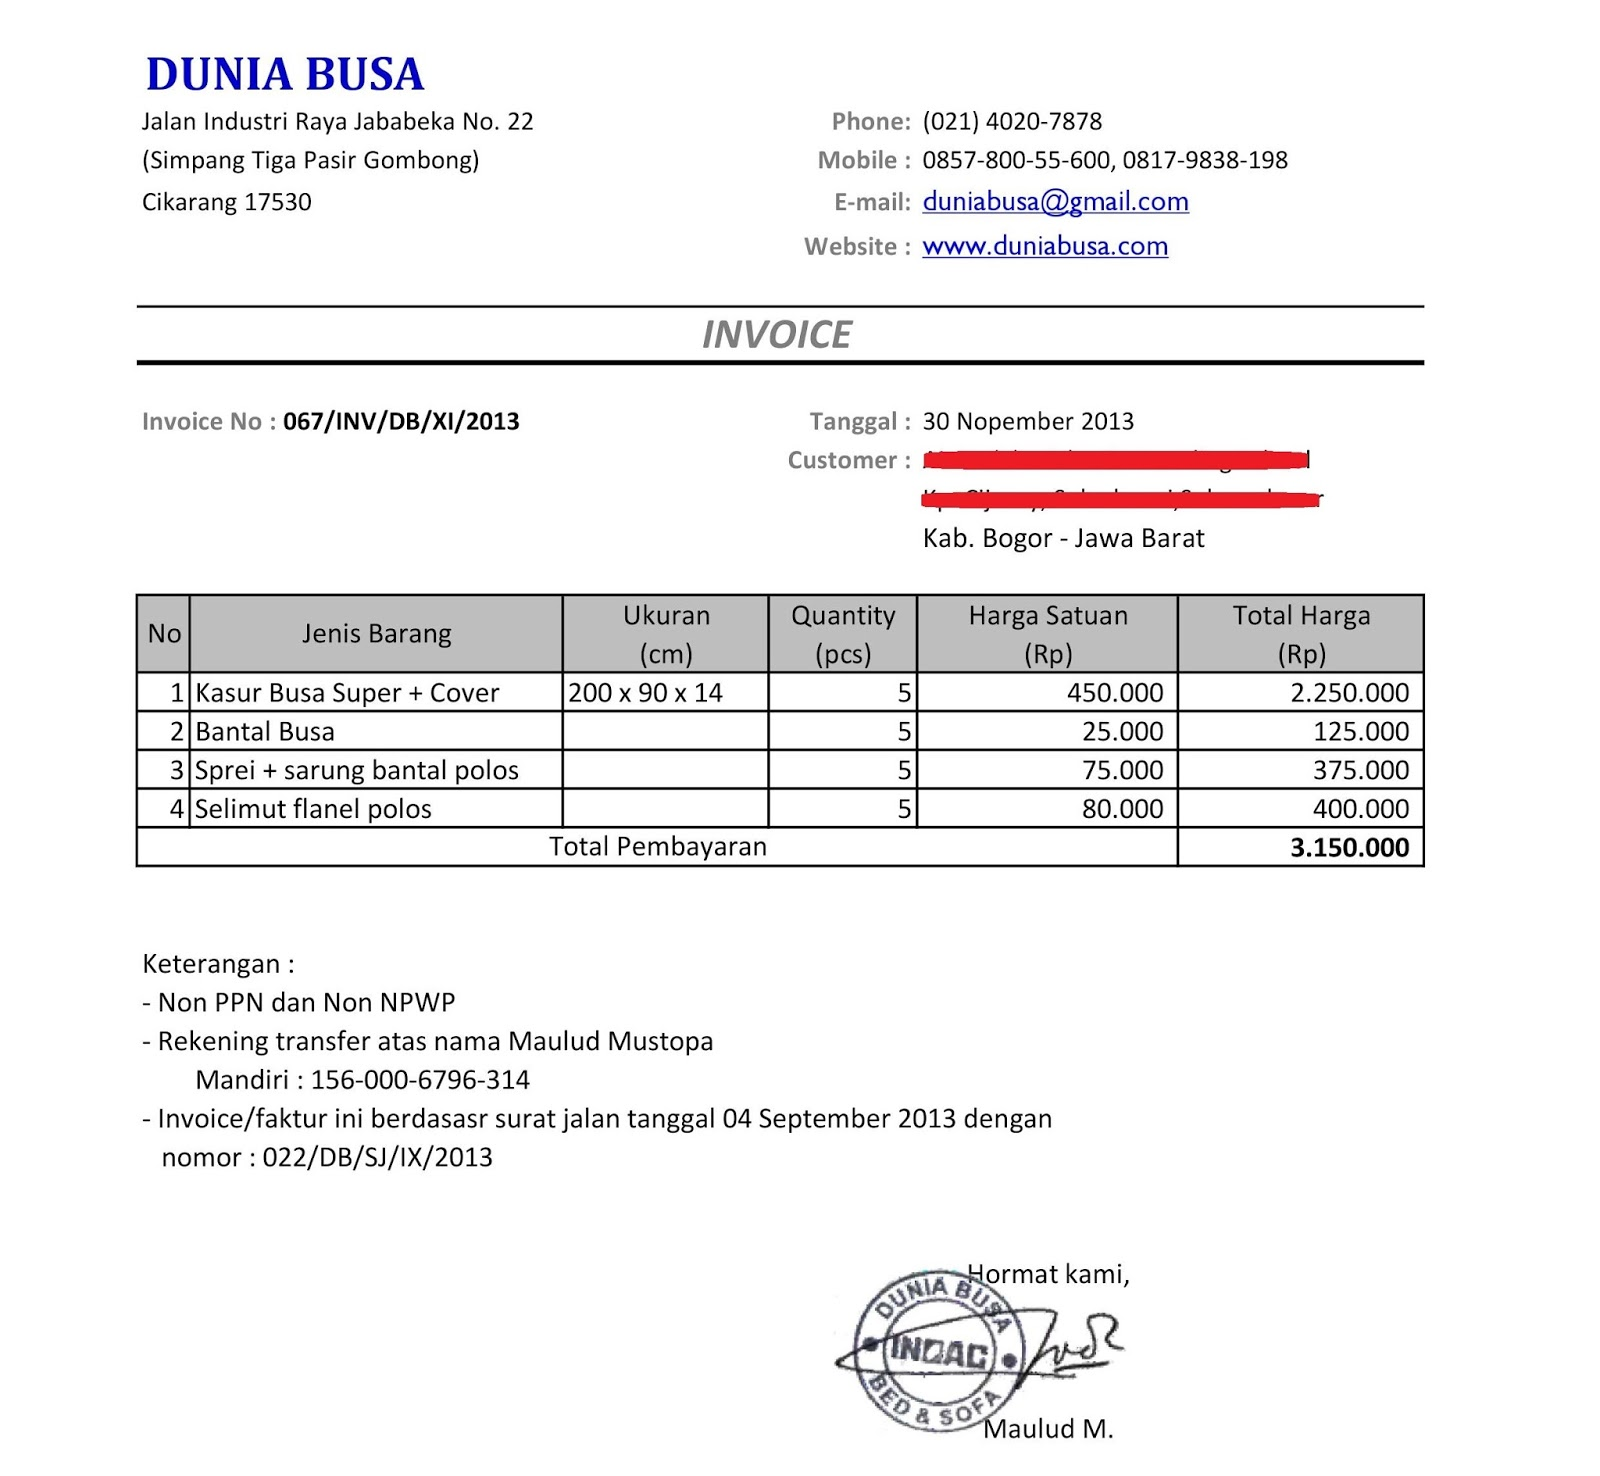 Usdgus  Seductive Free Invoice Online  Create Invoice Online  Invoice Template  With Licious Contoh Format Invoice Atau Surat Tagihan  Brankas Arsip  Free Invoice Online With Enchanting Nissan Rogue Invoice Also Free Invoices Forms In Addition Word  Invoice Template And Invoice For Ebay As Well As How To Write An Invoice Freelance Additionally Rent Invoice Template Free From Sklepco With Usdgus  Licious Free Invoice Online  Create Invoice Online  Invoice Template  With Enchanting Contoh Format Invoice Atau Surat Tagihan  Brankas Arsip  Free Invoice Online And Seductive Nissan Rogue Invoice Also Free Invoices Forms In Addition Word  Invoice Template From Sklepco